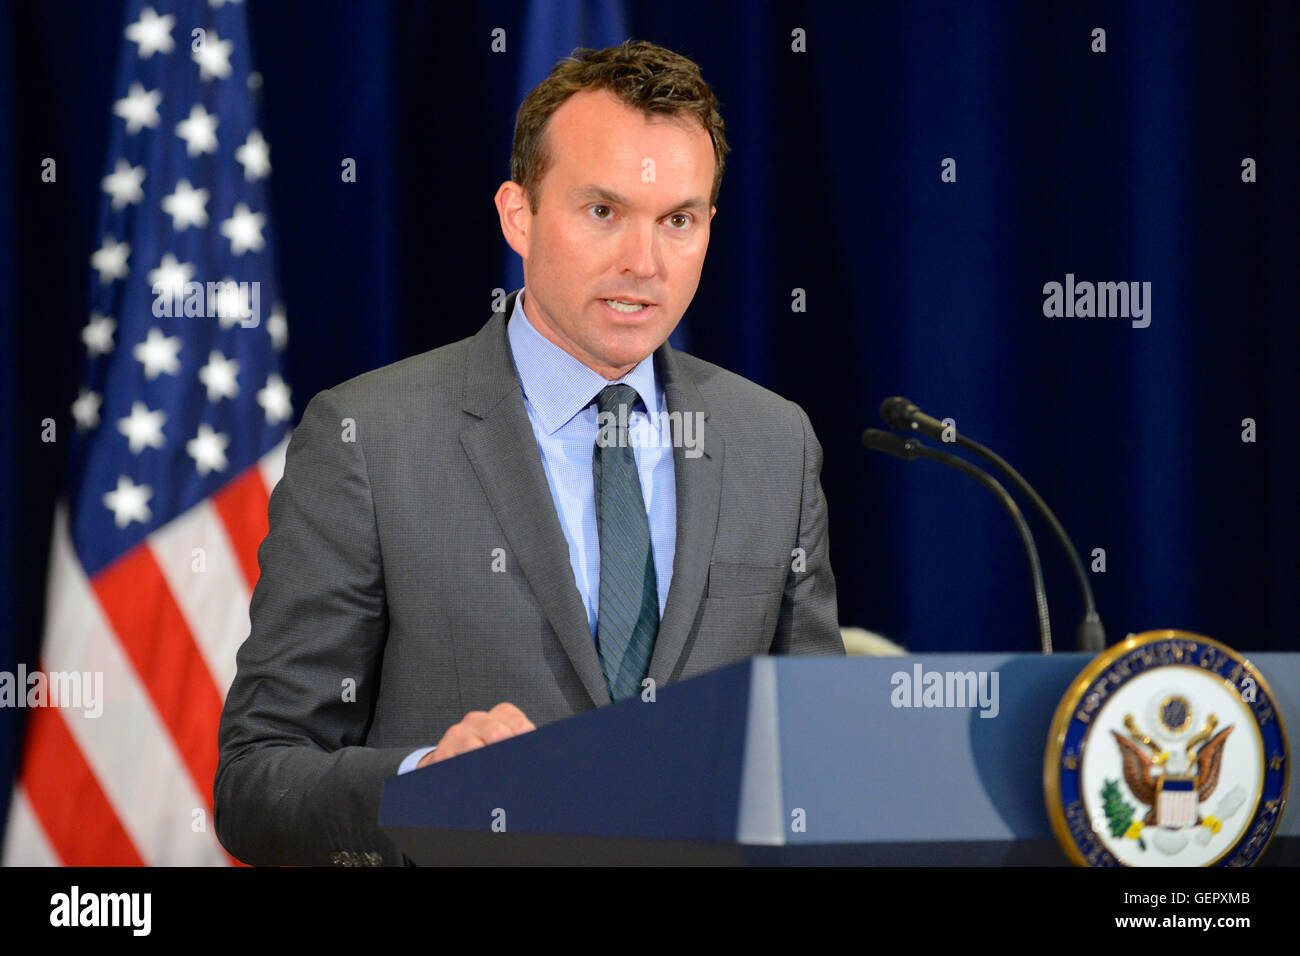 Secretary of the Army Fanning Delivers Remarks at the State Department's 'Pride at State' Event in Washington, - Stock Image